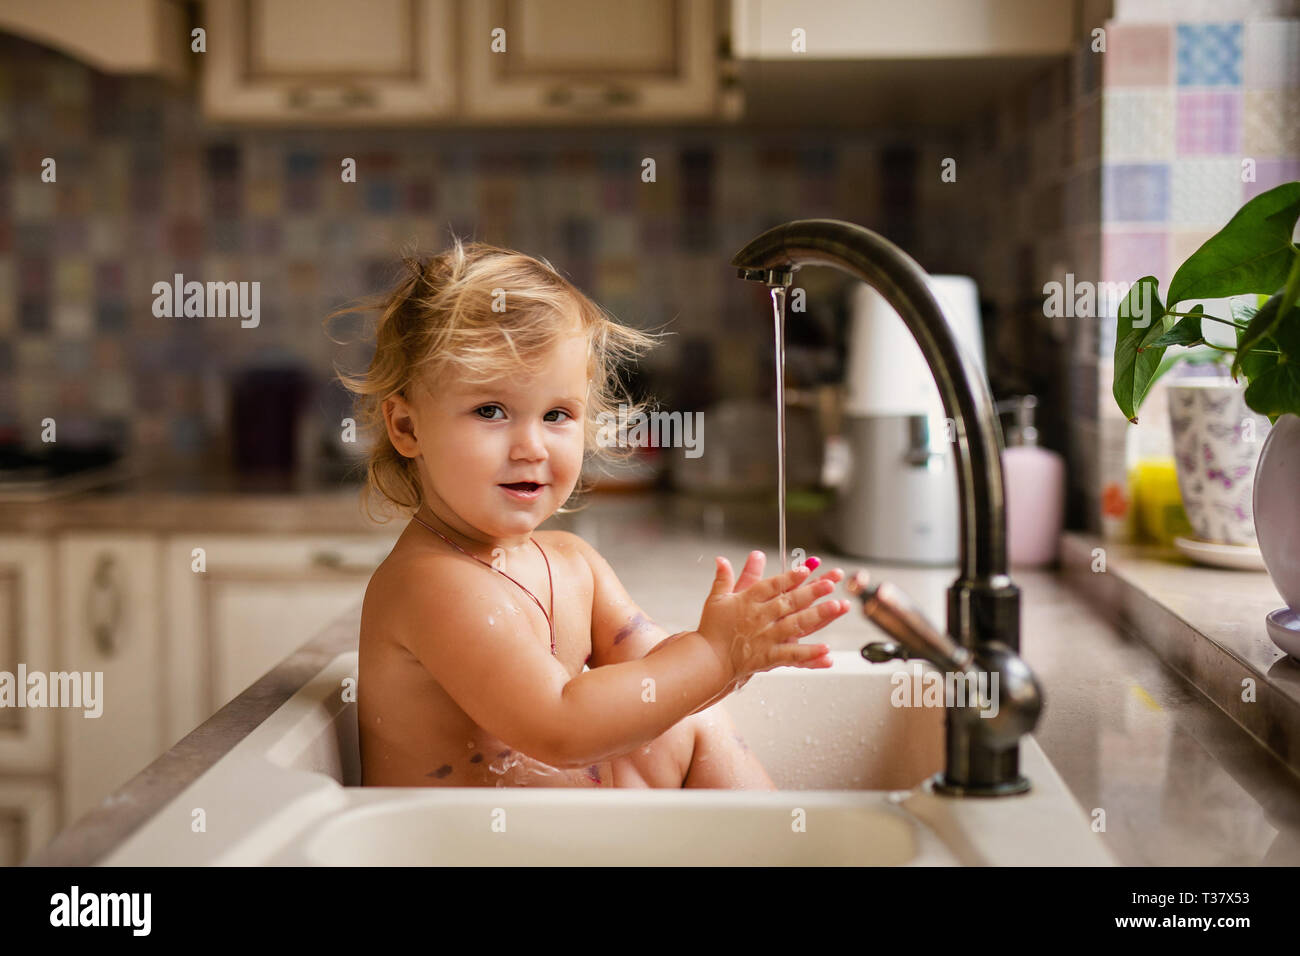 Baby Taking Bath In The Kitchen Sink Child Playing With Water And Soap Bubbles In A Sunny Kitchen With Window Water Fun For Kids Hygiene And Skin Care Fo Stock Photo